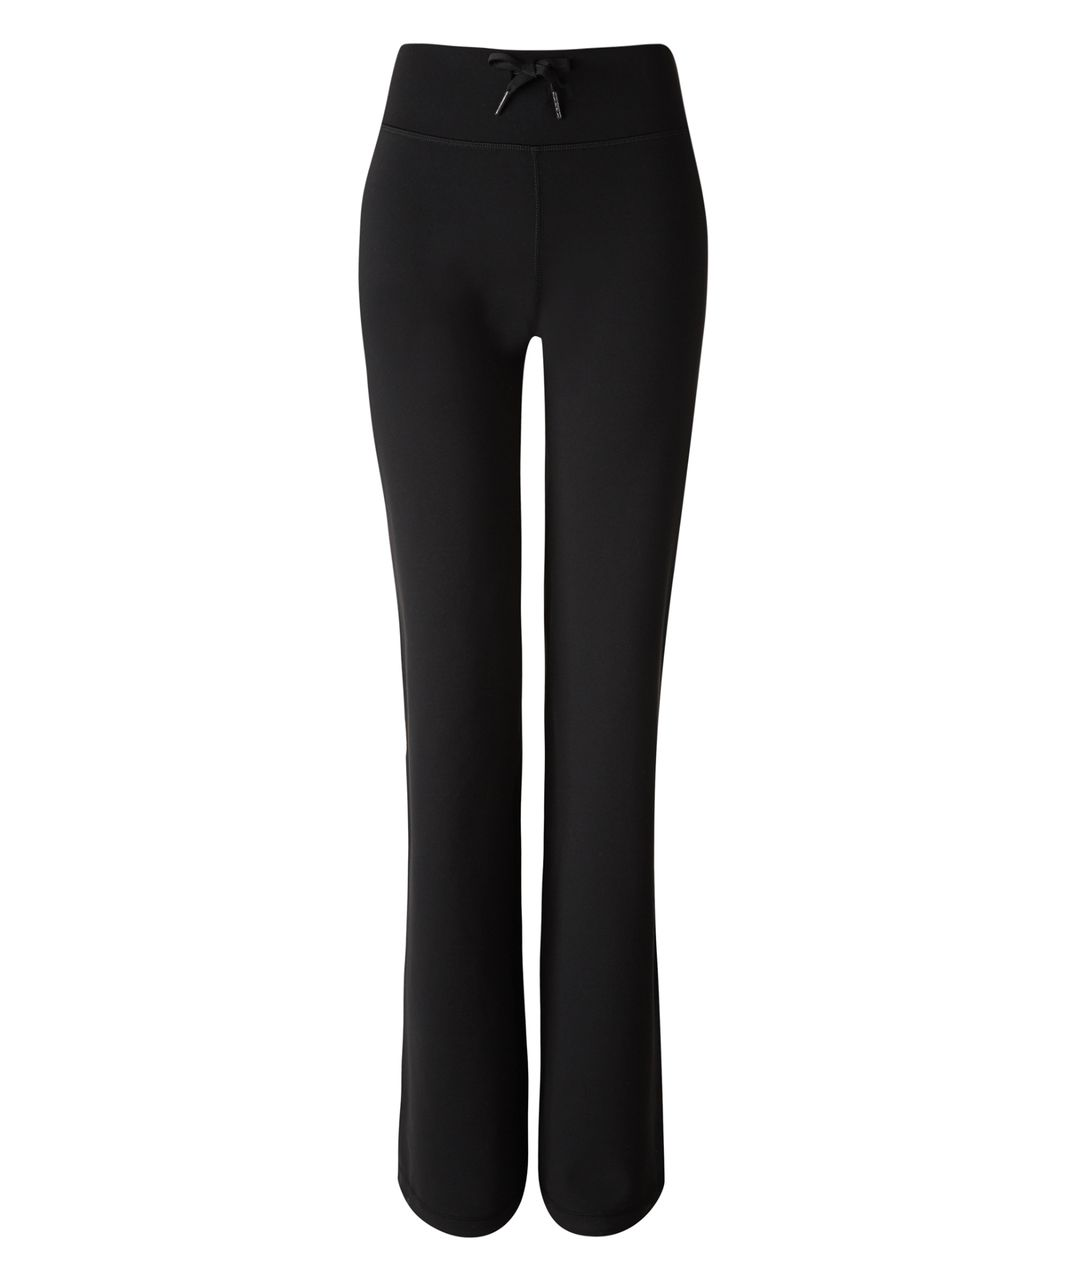 Lululemon Relaxed Fit Pant - Black